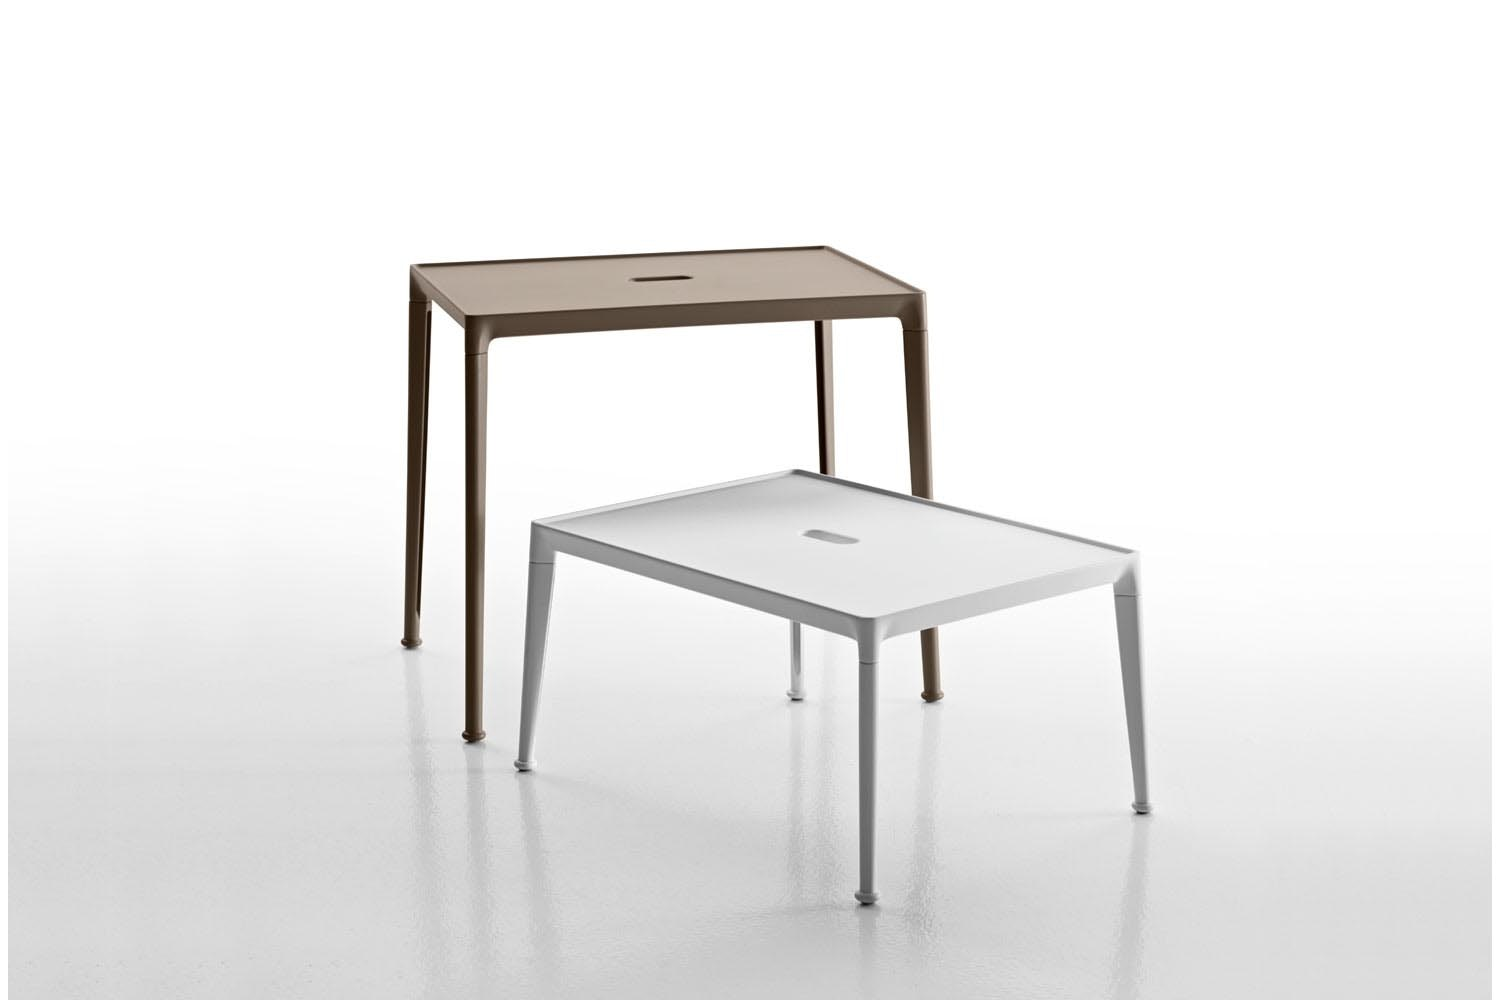 Mirto Side Table by Antonio Citterio for B&B Italia